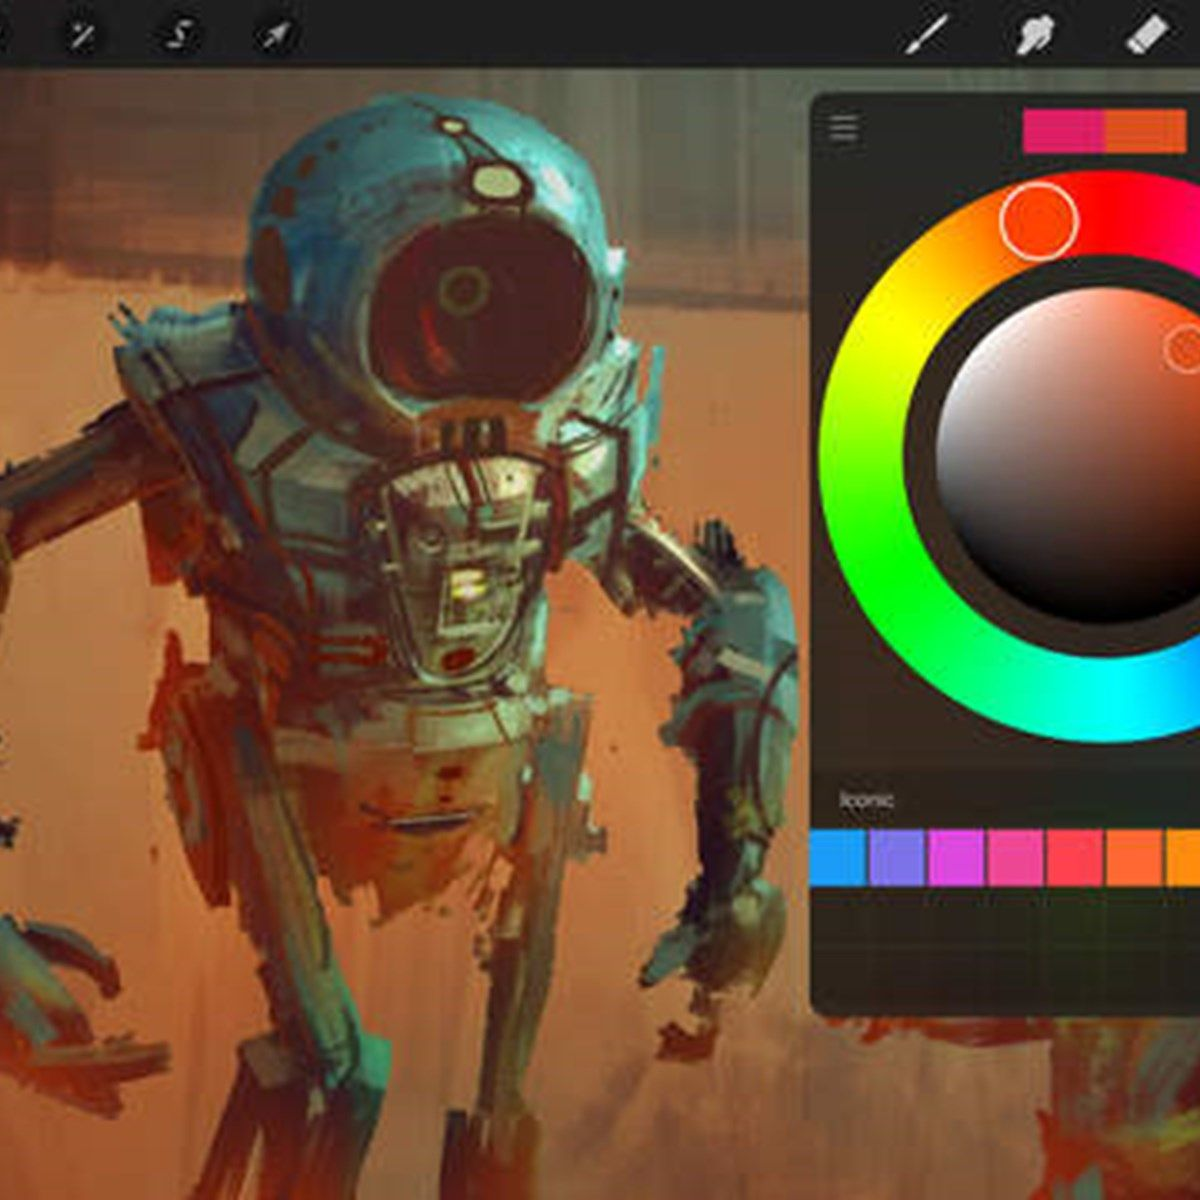 Popular Alternatives to Procreate for Android. Explore 9